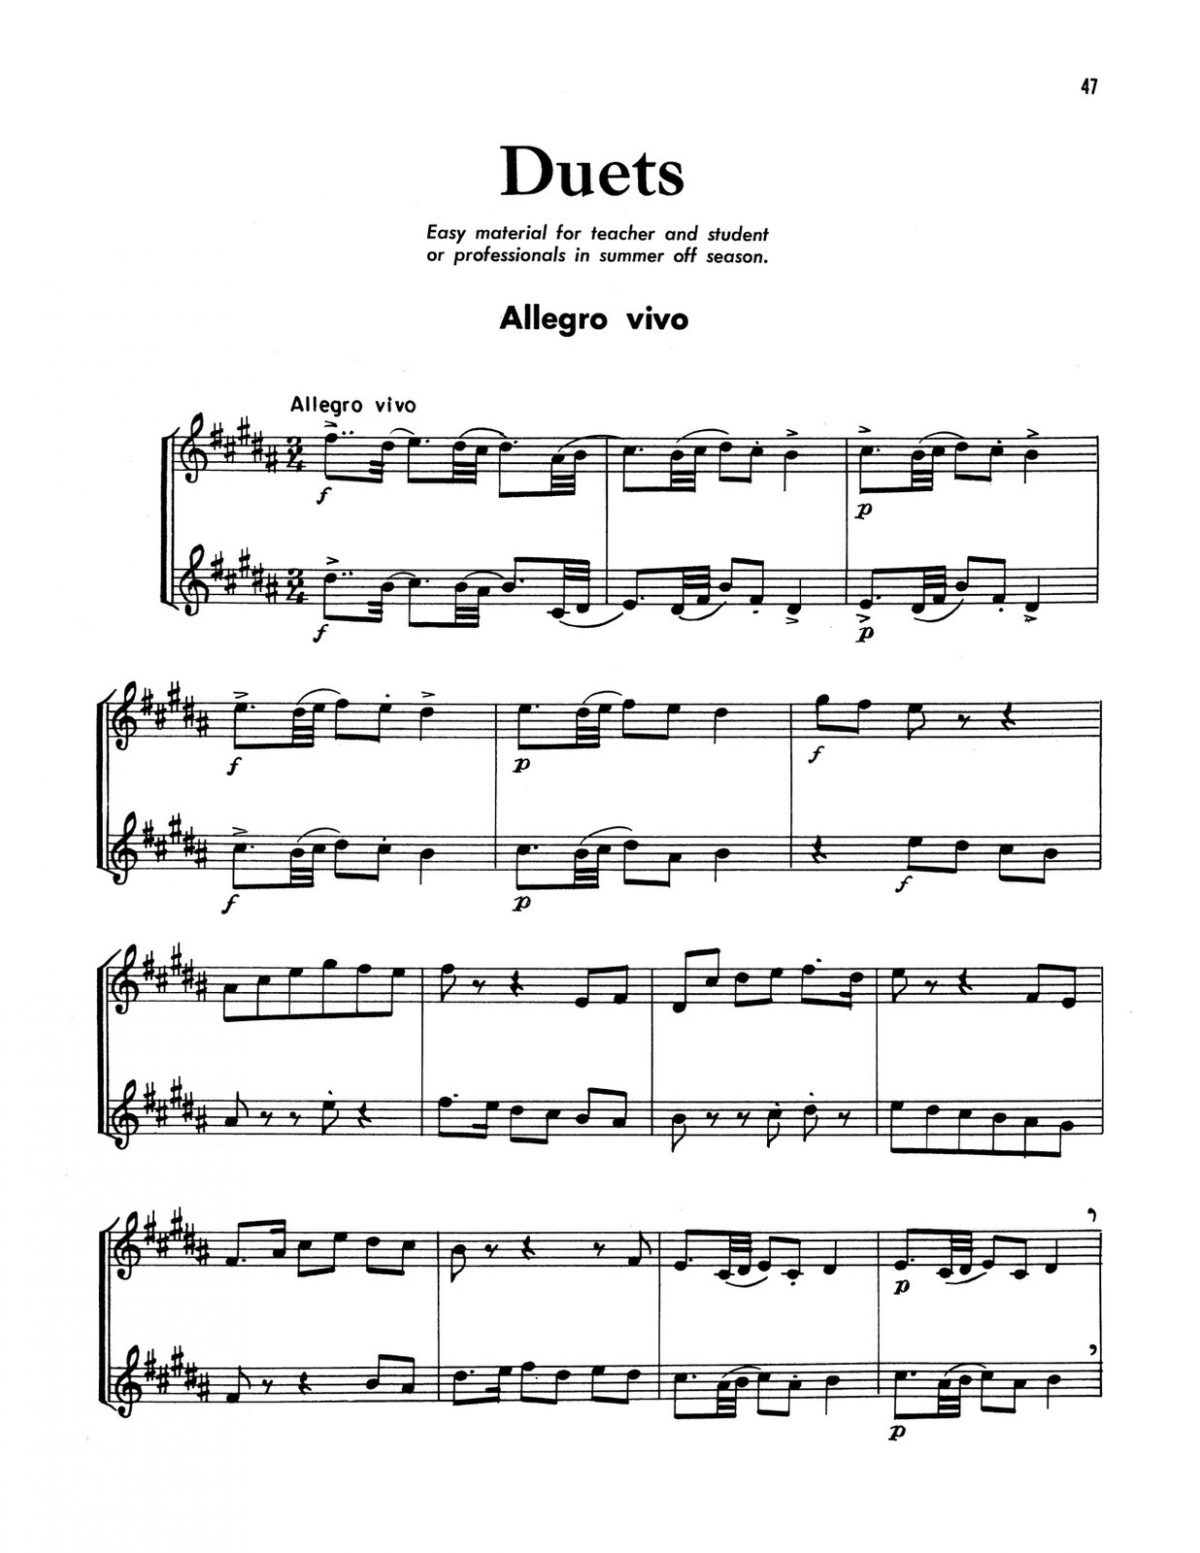 Broiles, Trumpet Studies and Duets Book 3-p49